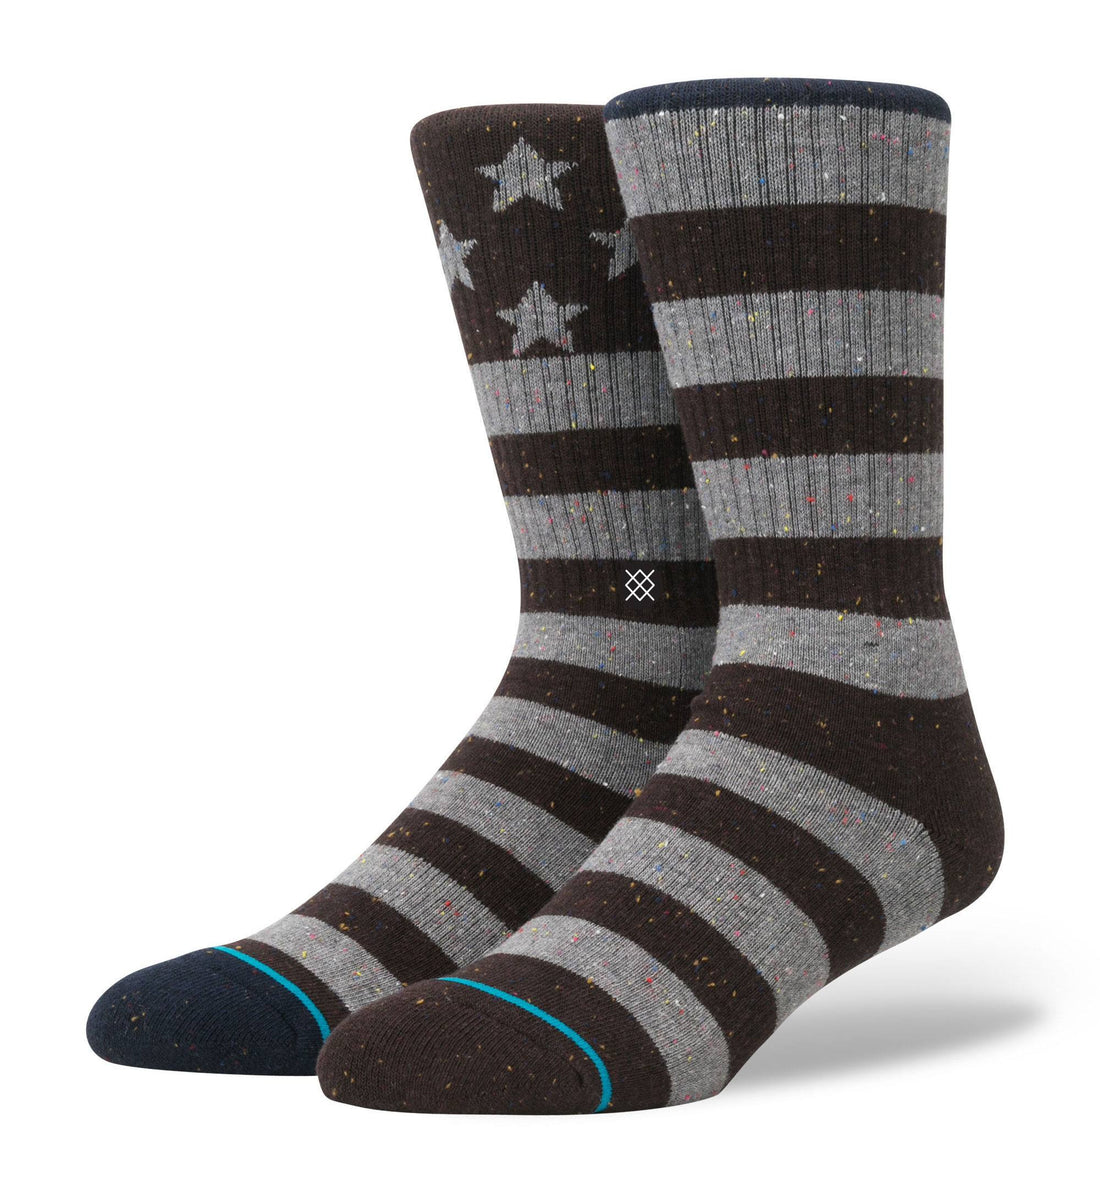 Stance Lone Ranger, Nvy/Brn, L/XL - Socks/Underwear - Iron and Resin